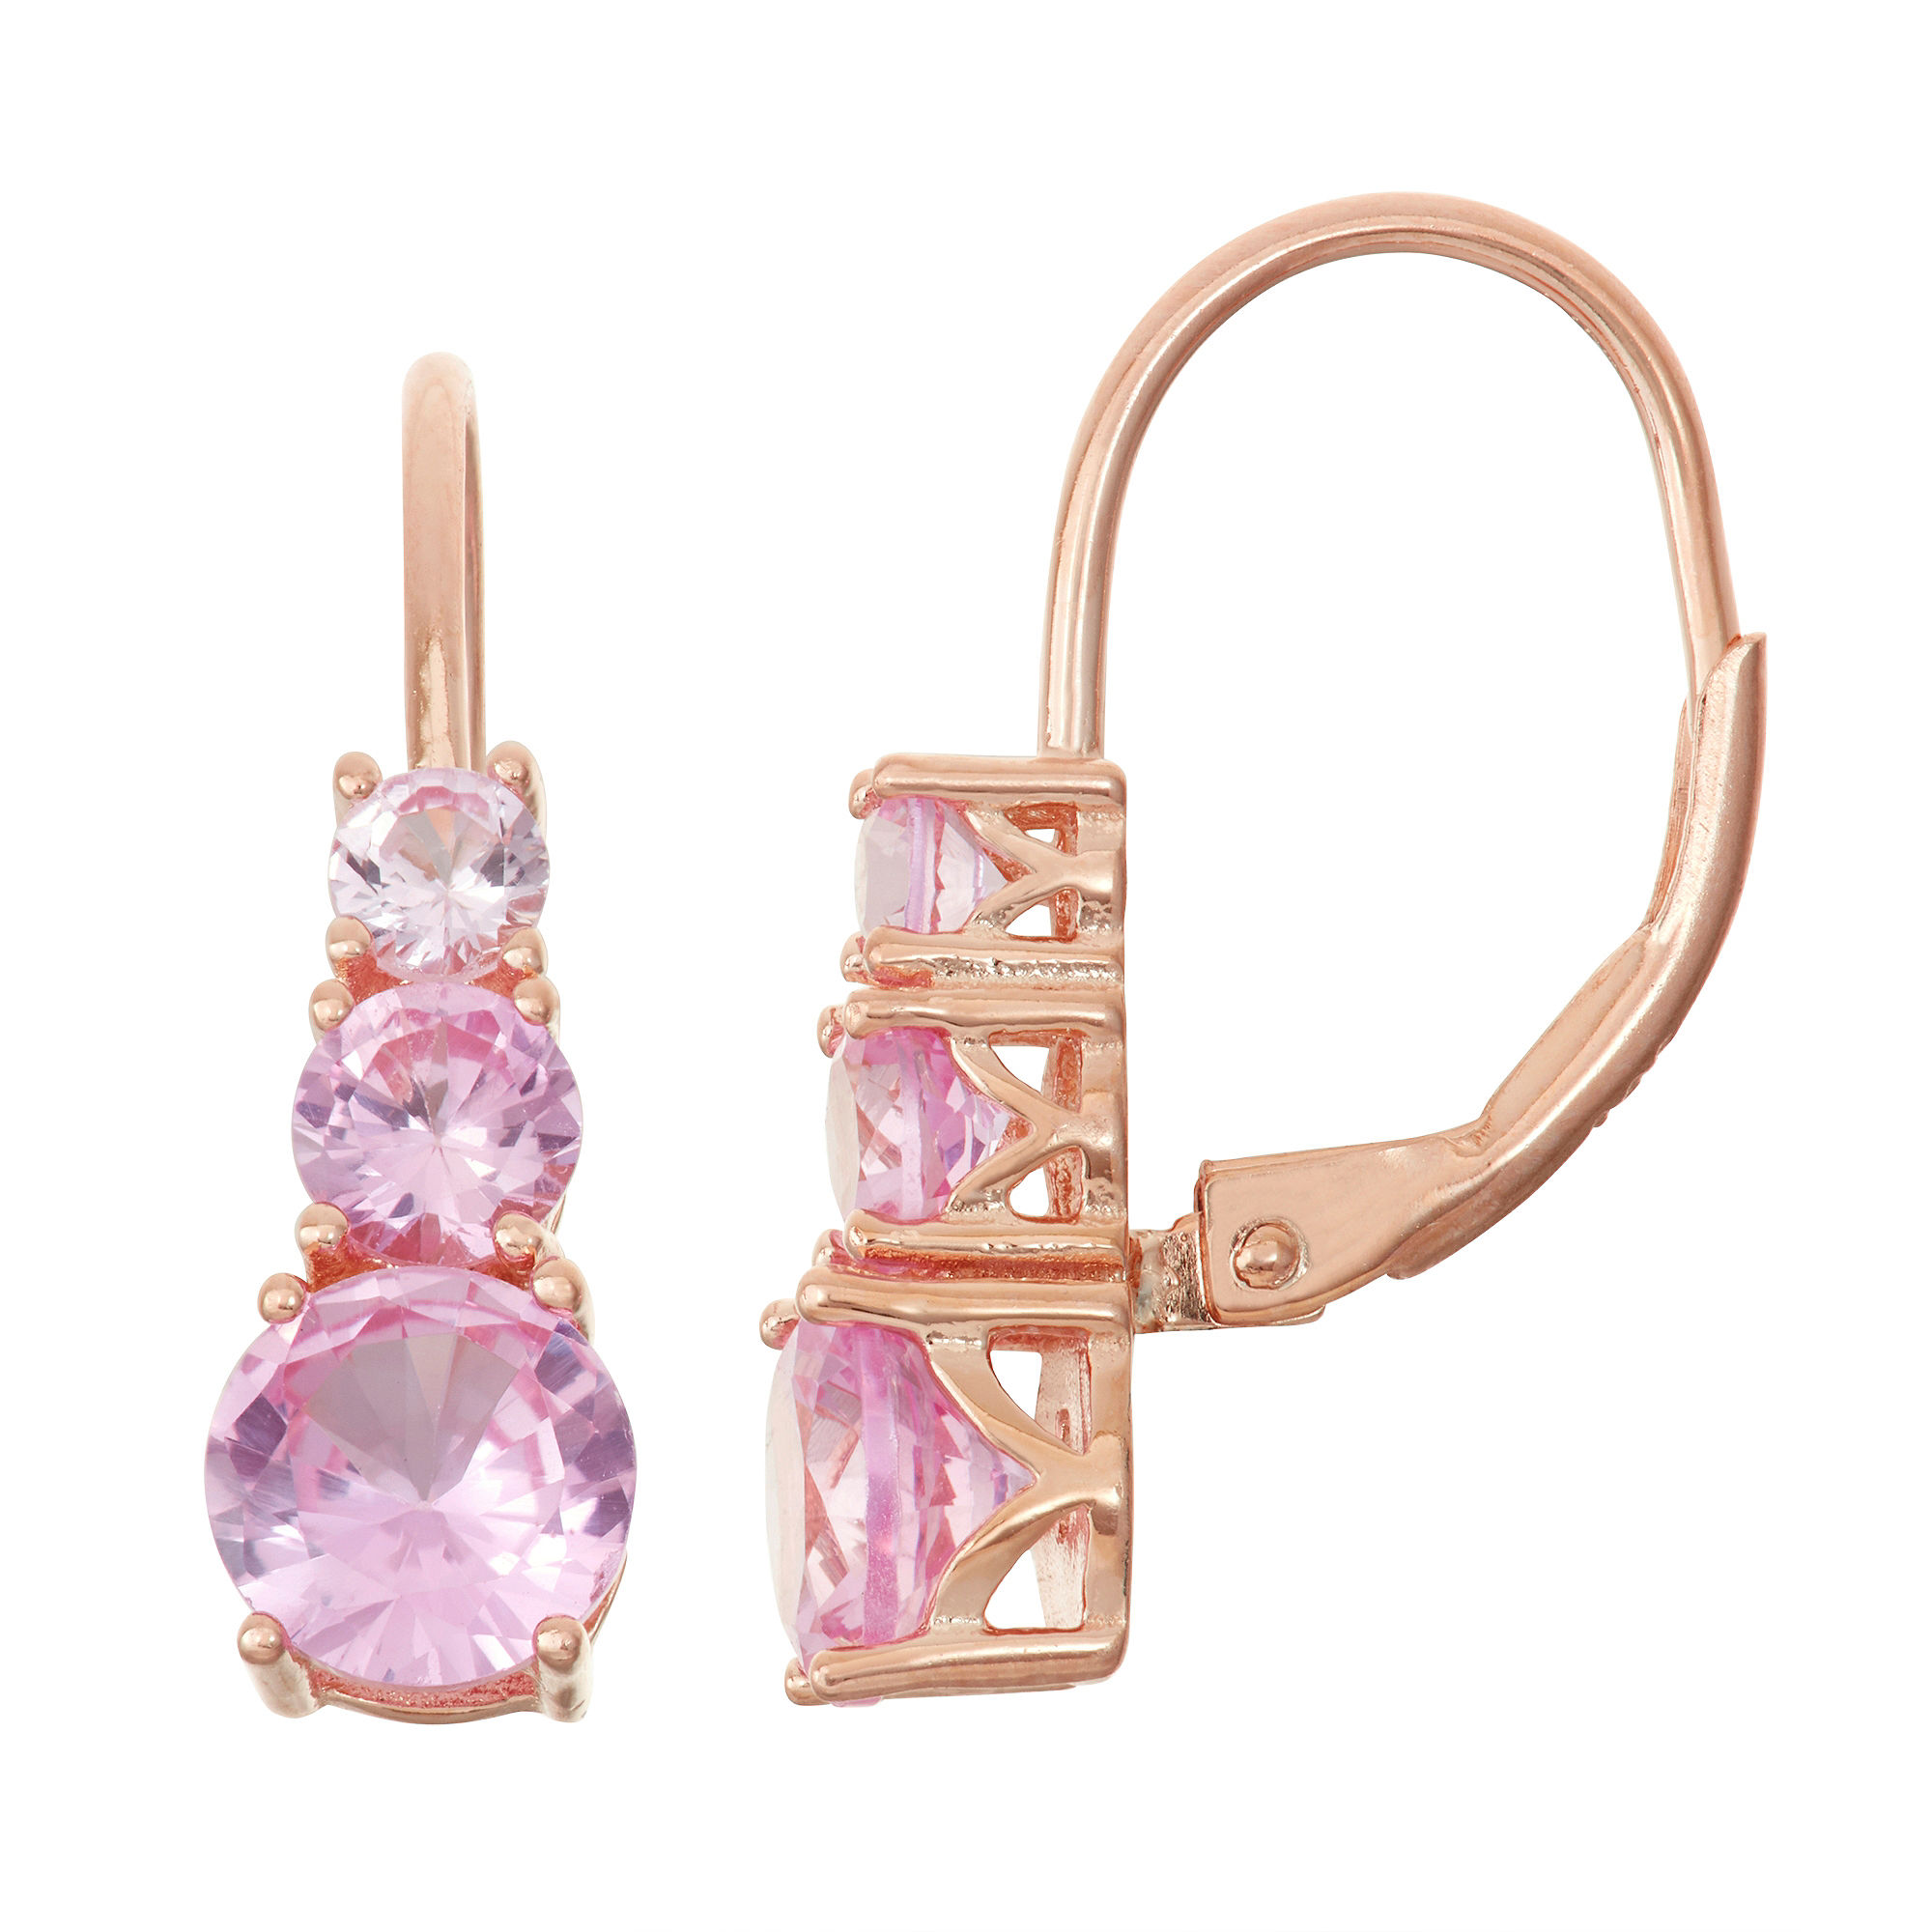 Lab-Created Pink Sapphire 14K Rose Gold Over Silver Leverback Earrings